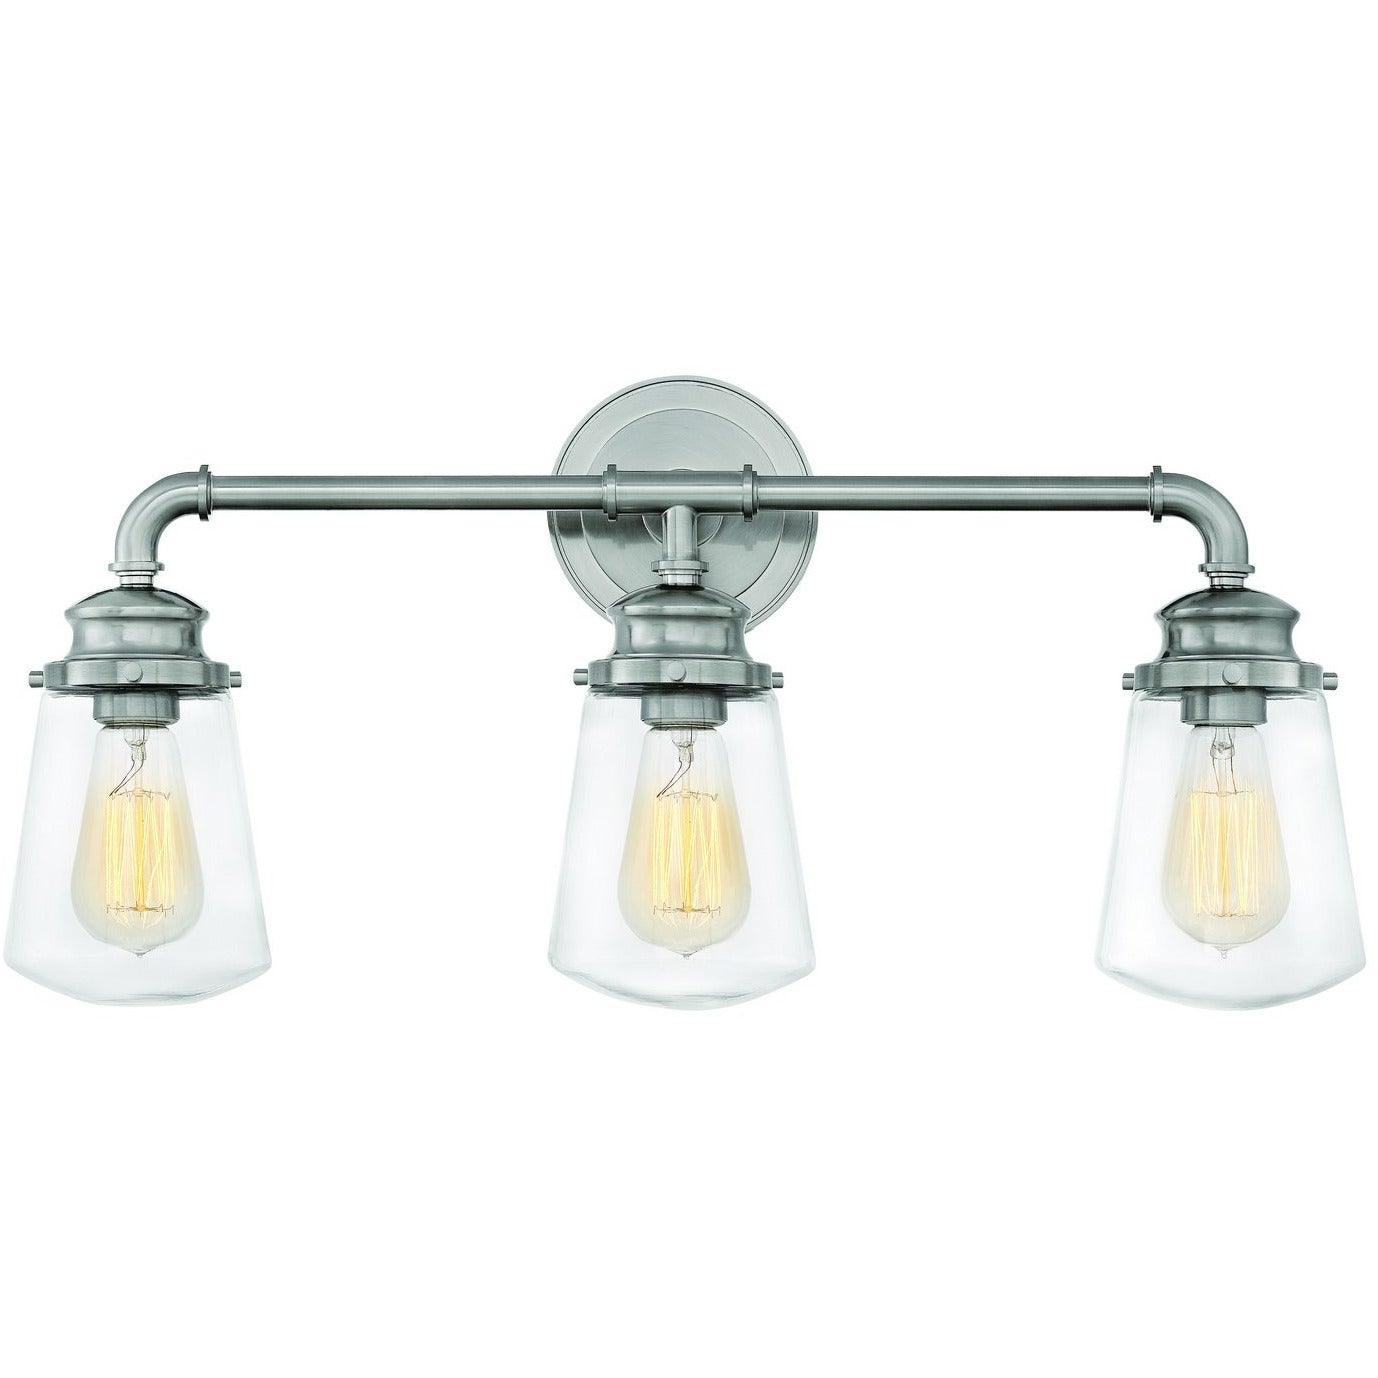 Hinkley Canada - 5033BN - Three Light Bath - Fritz - Brushed Nickel